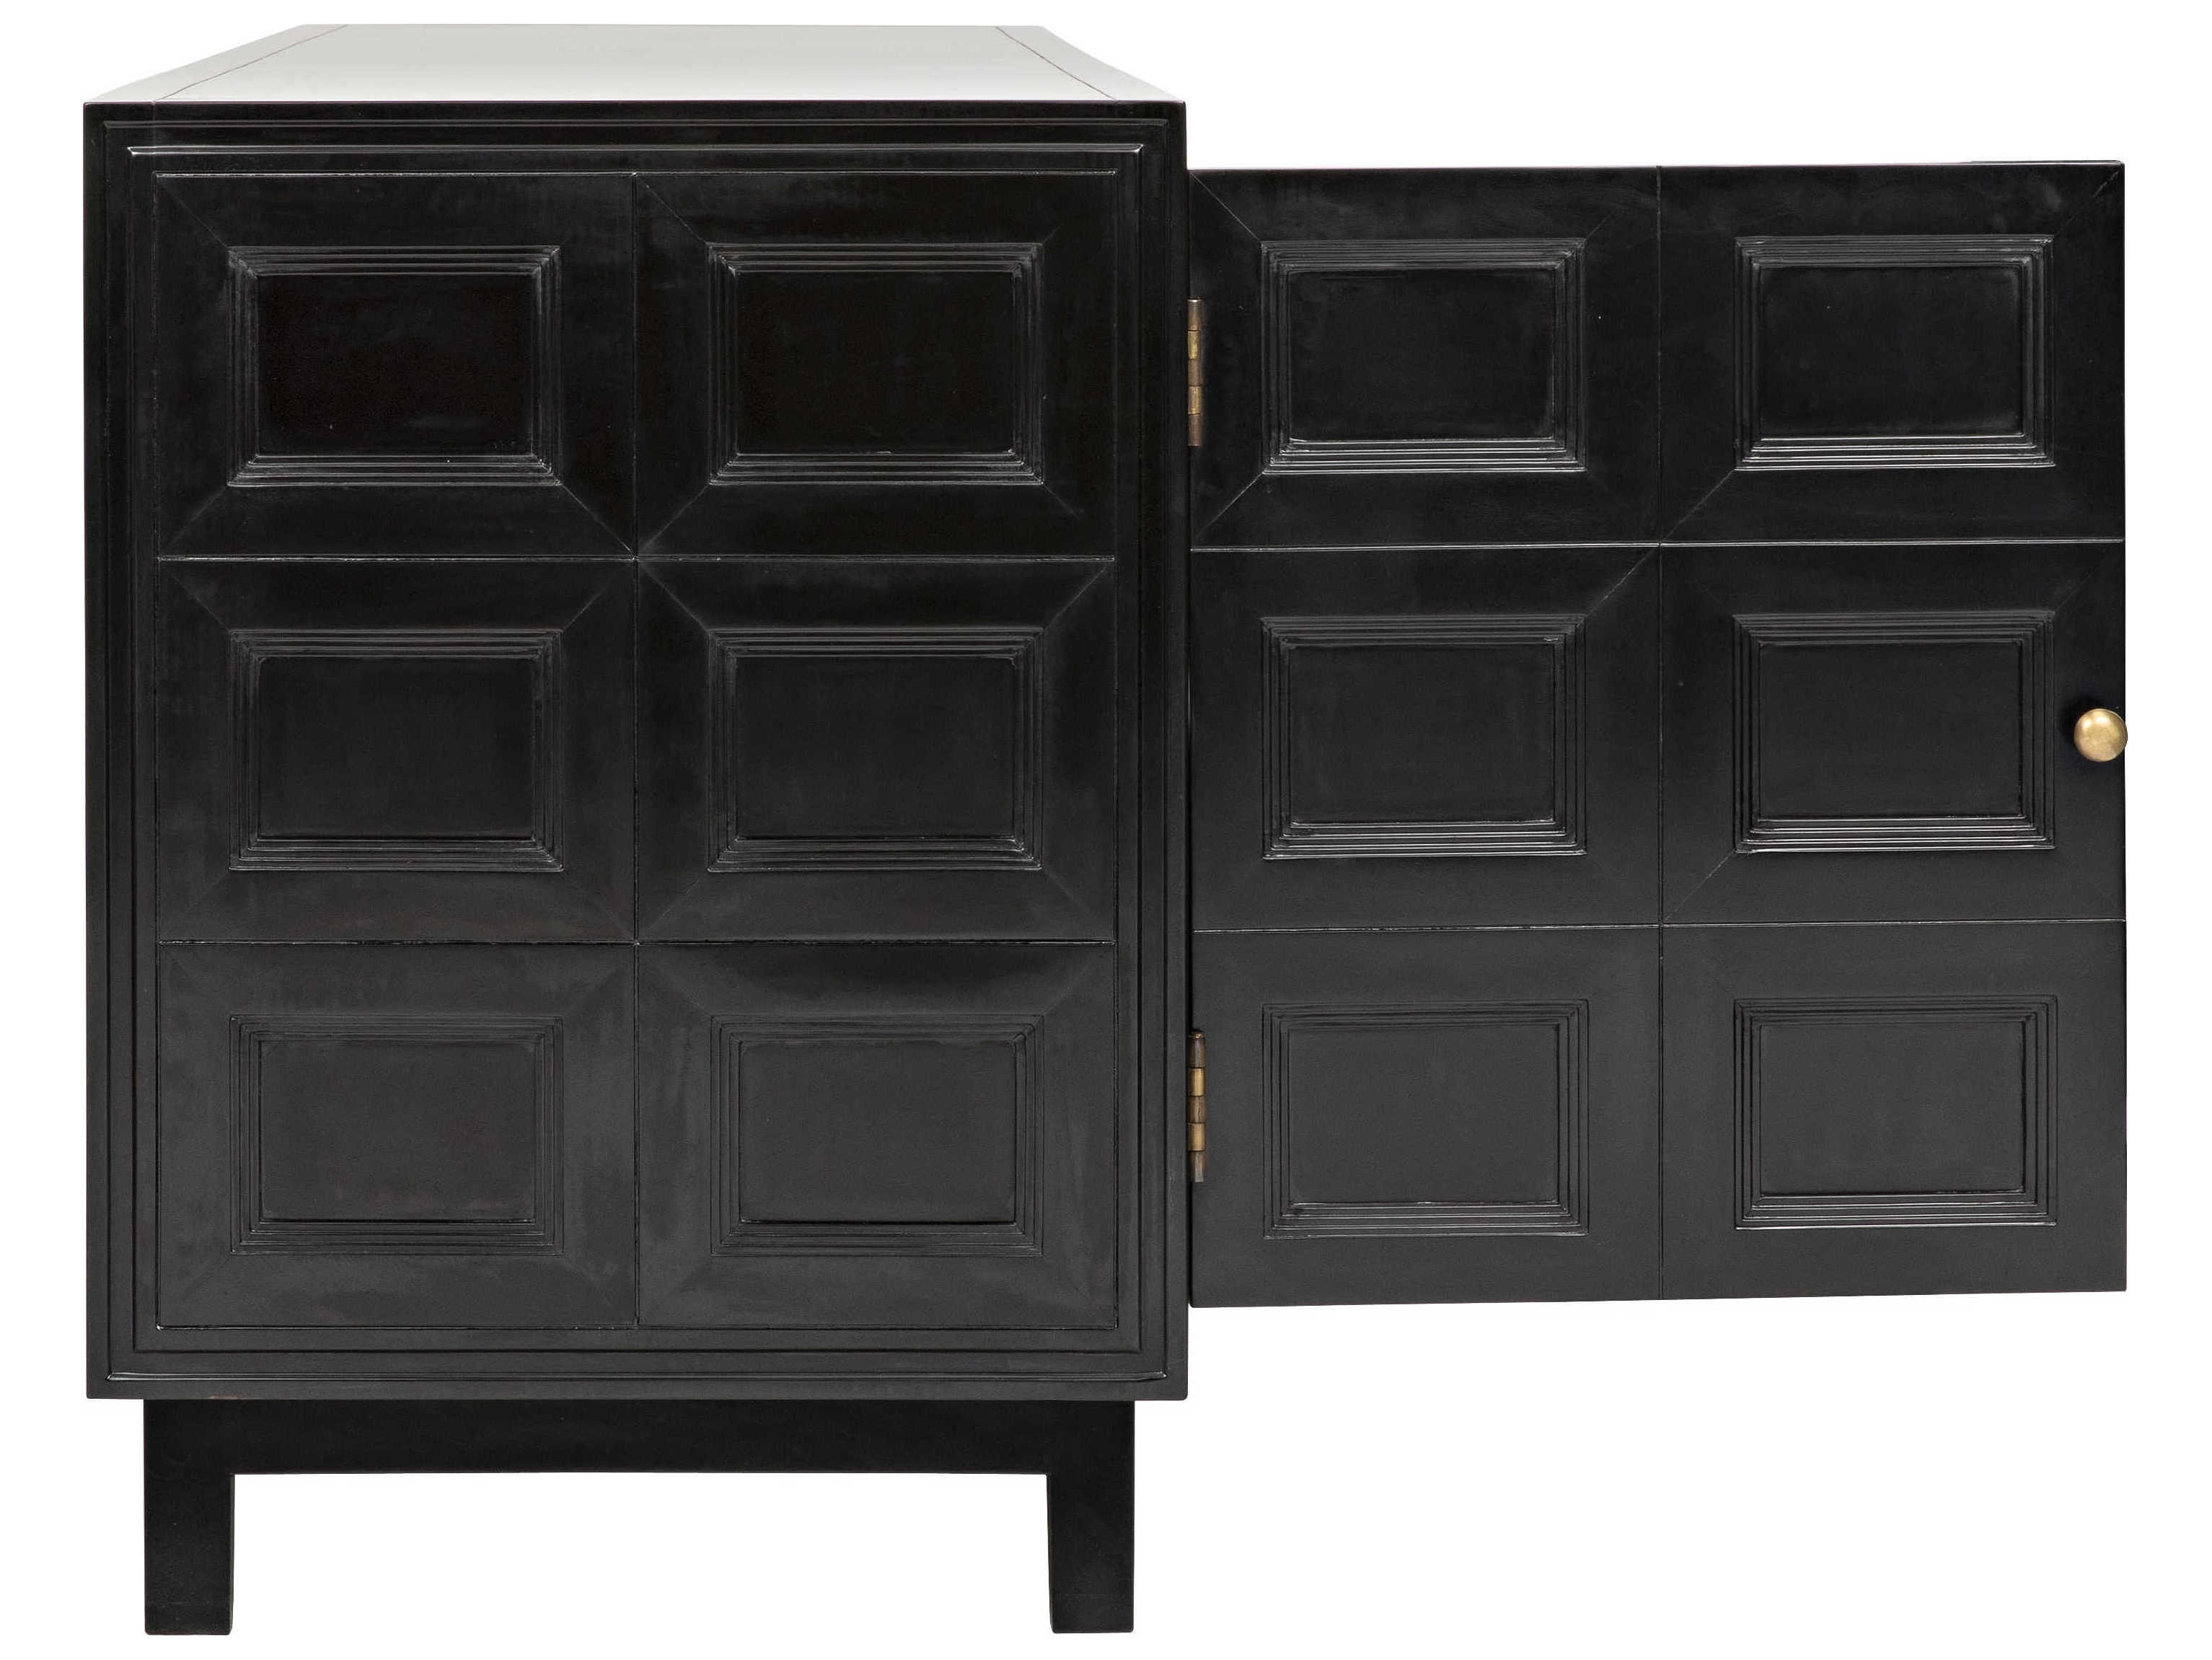 Noir Furniture Wyatt Charcoal 73'' X 23'' Sideboard | Noigcon249ch For Latest Wyatt Sideboards (View 10 of 20)